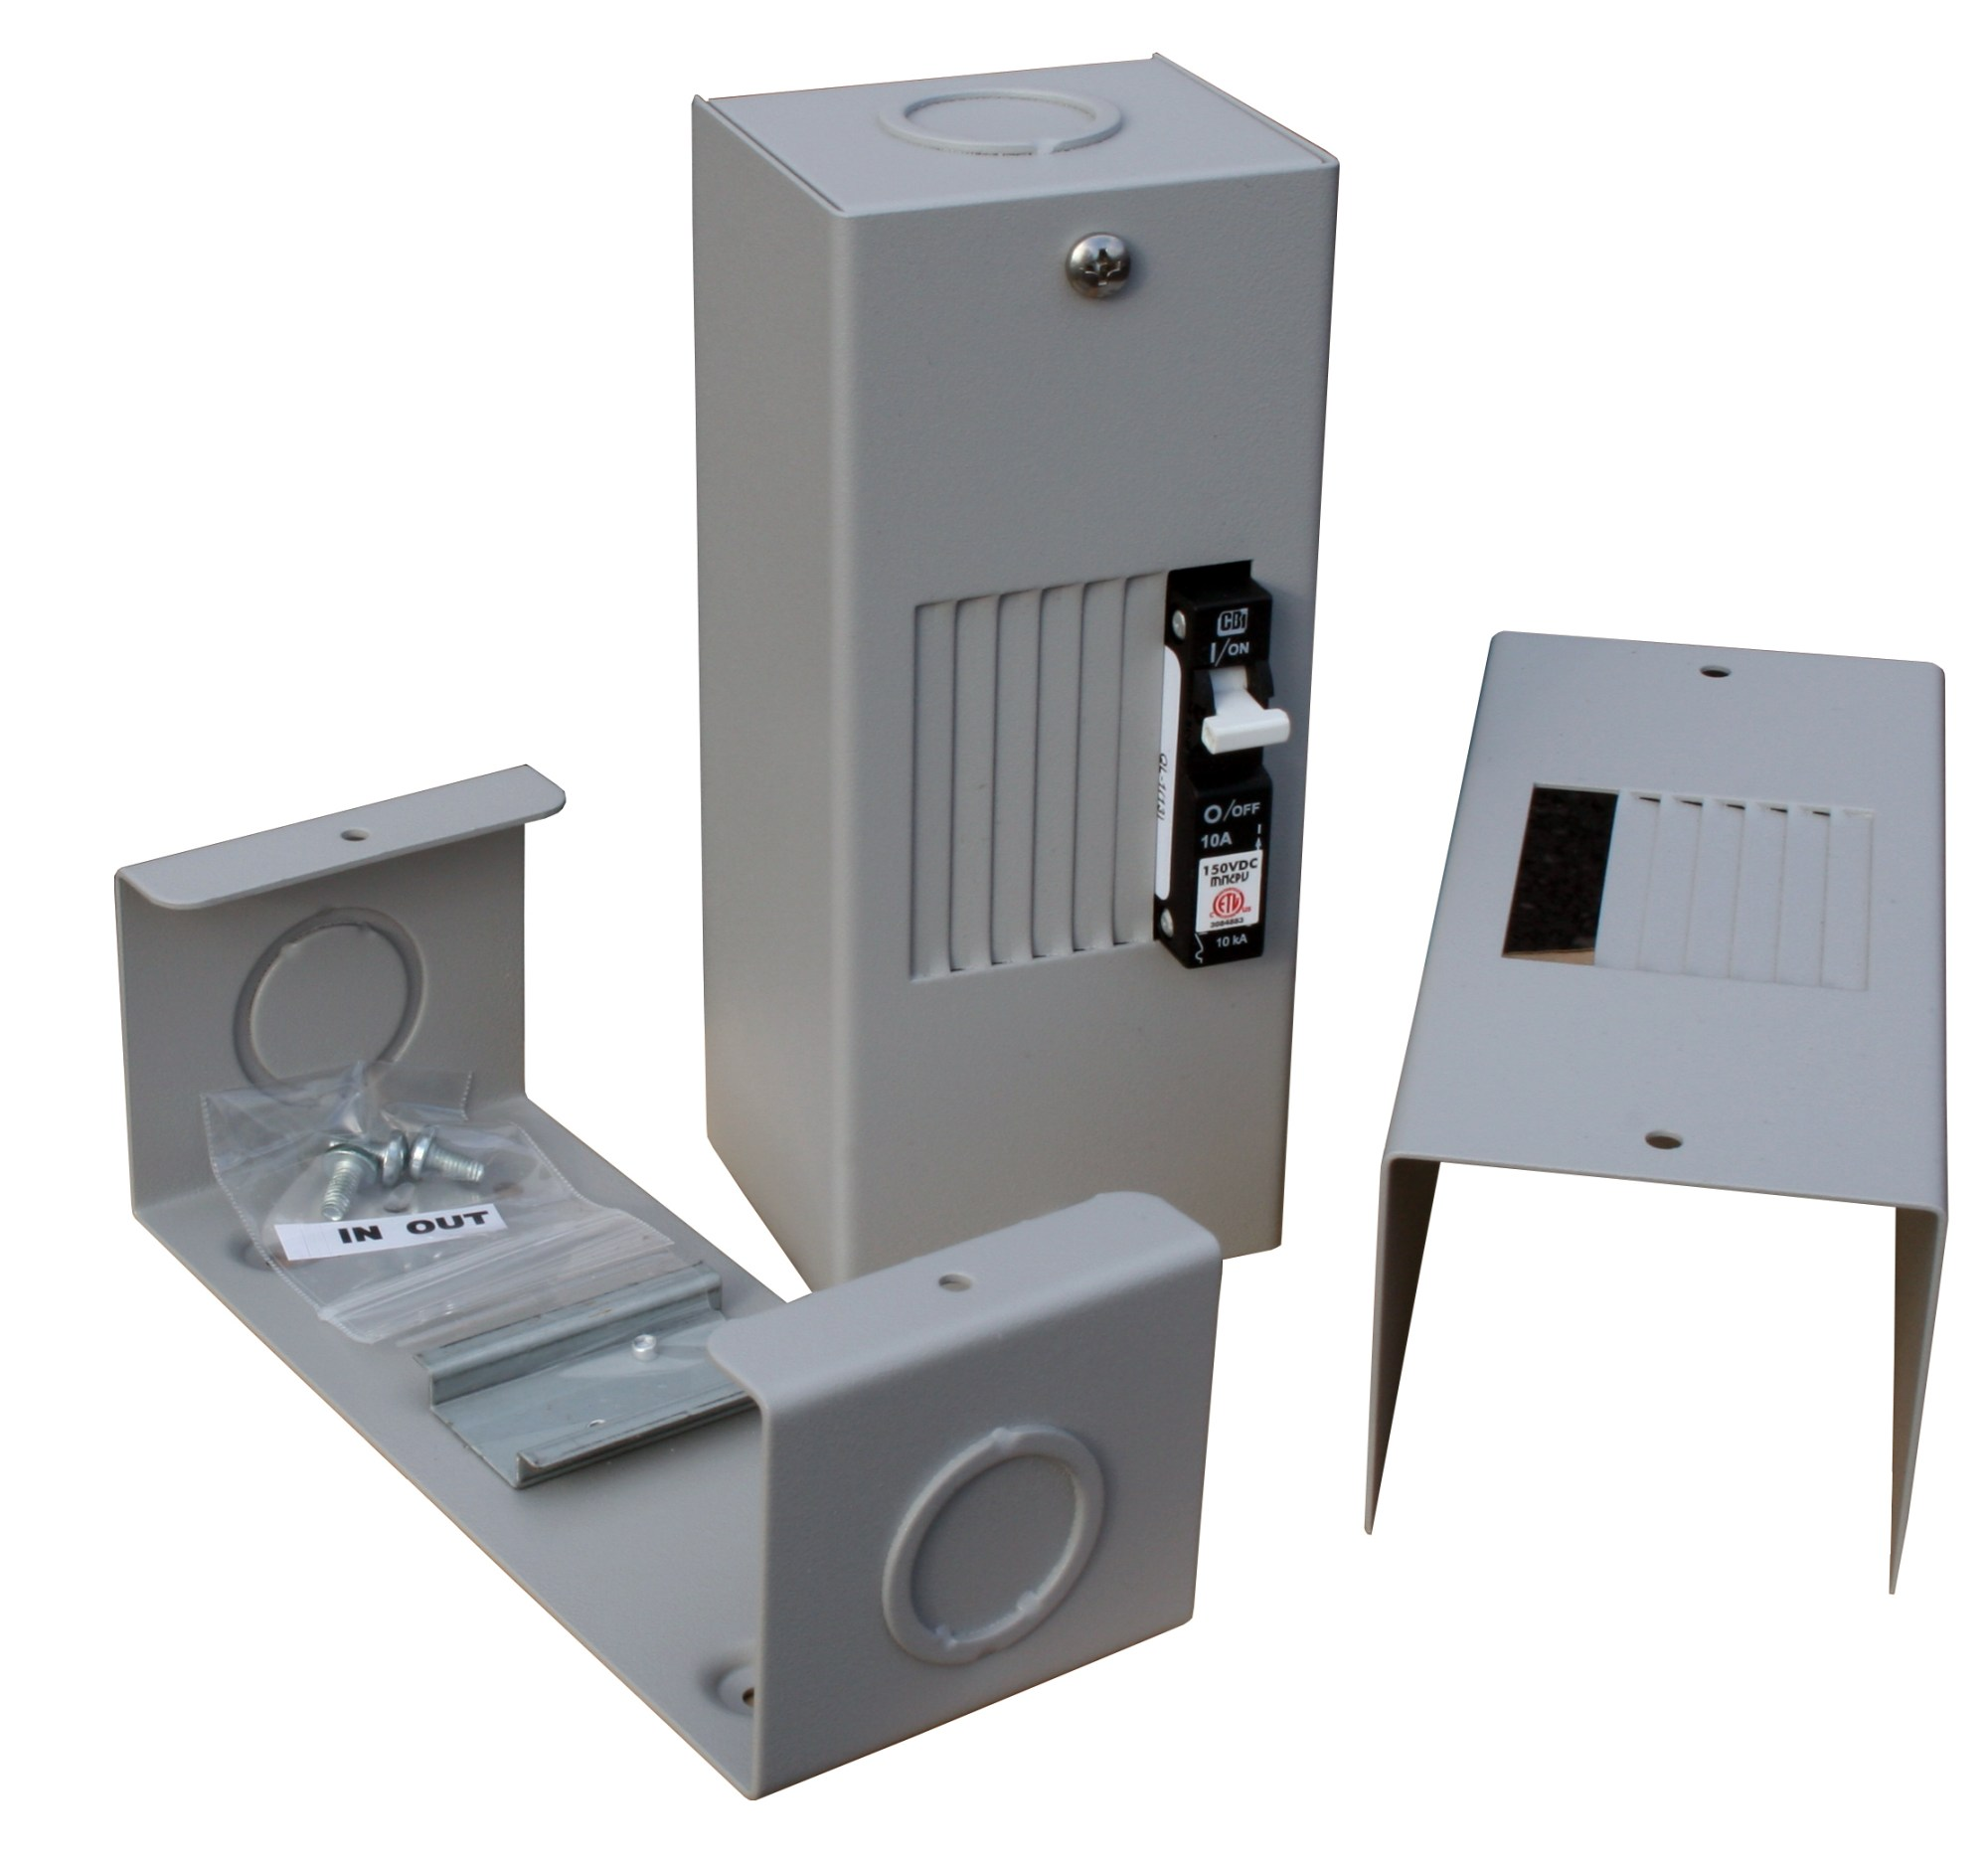 hight resolution of wiring of these fuse breaker devices is covered in detail in this article